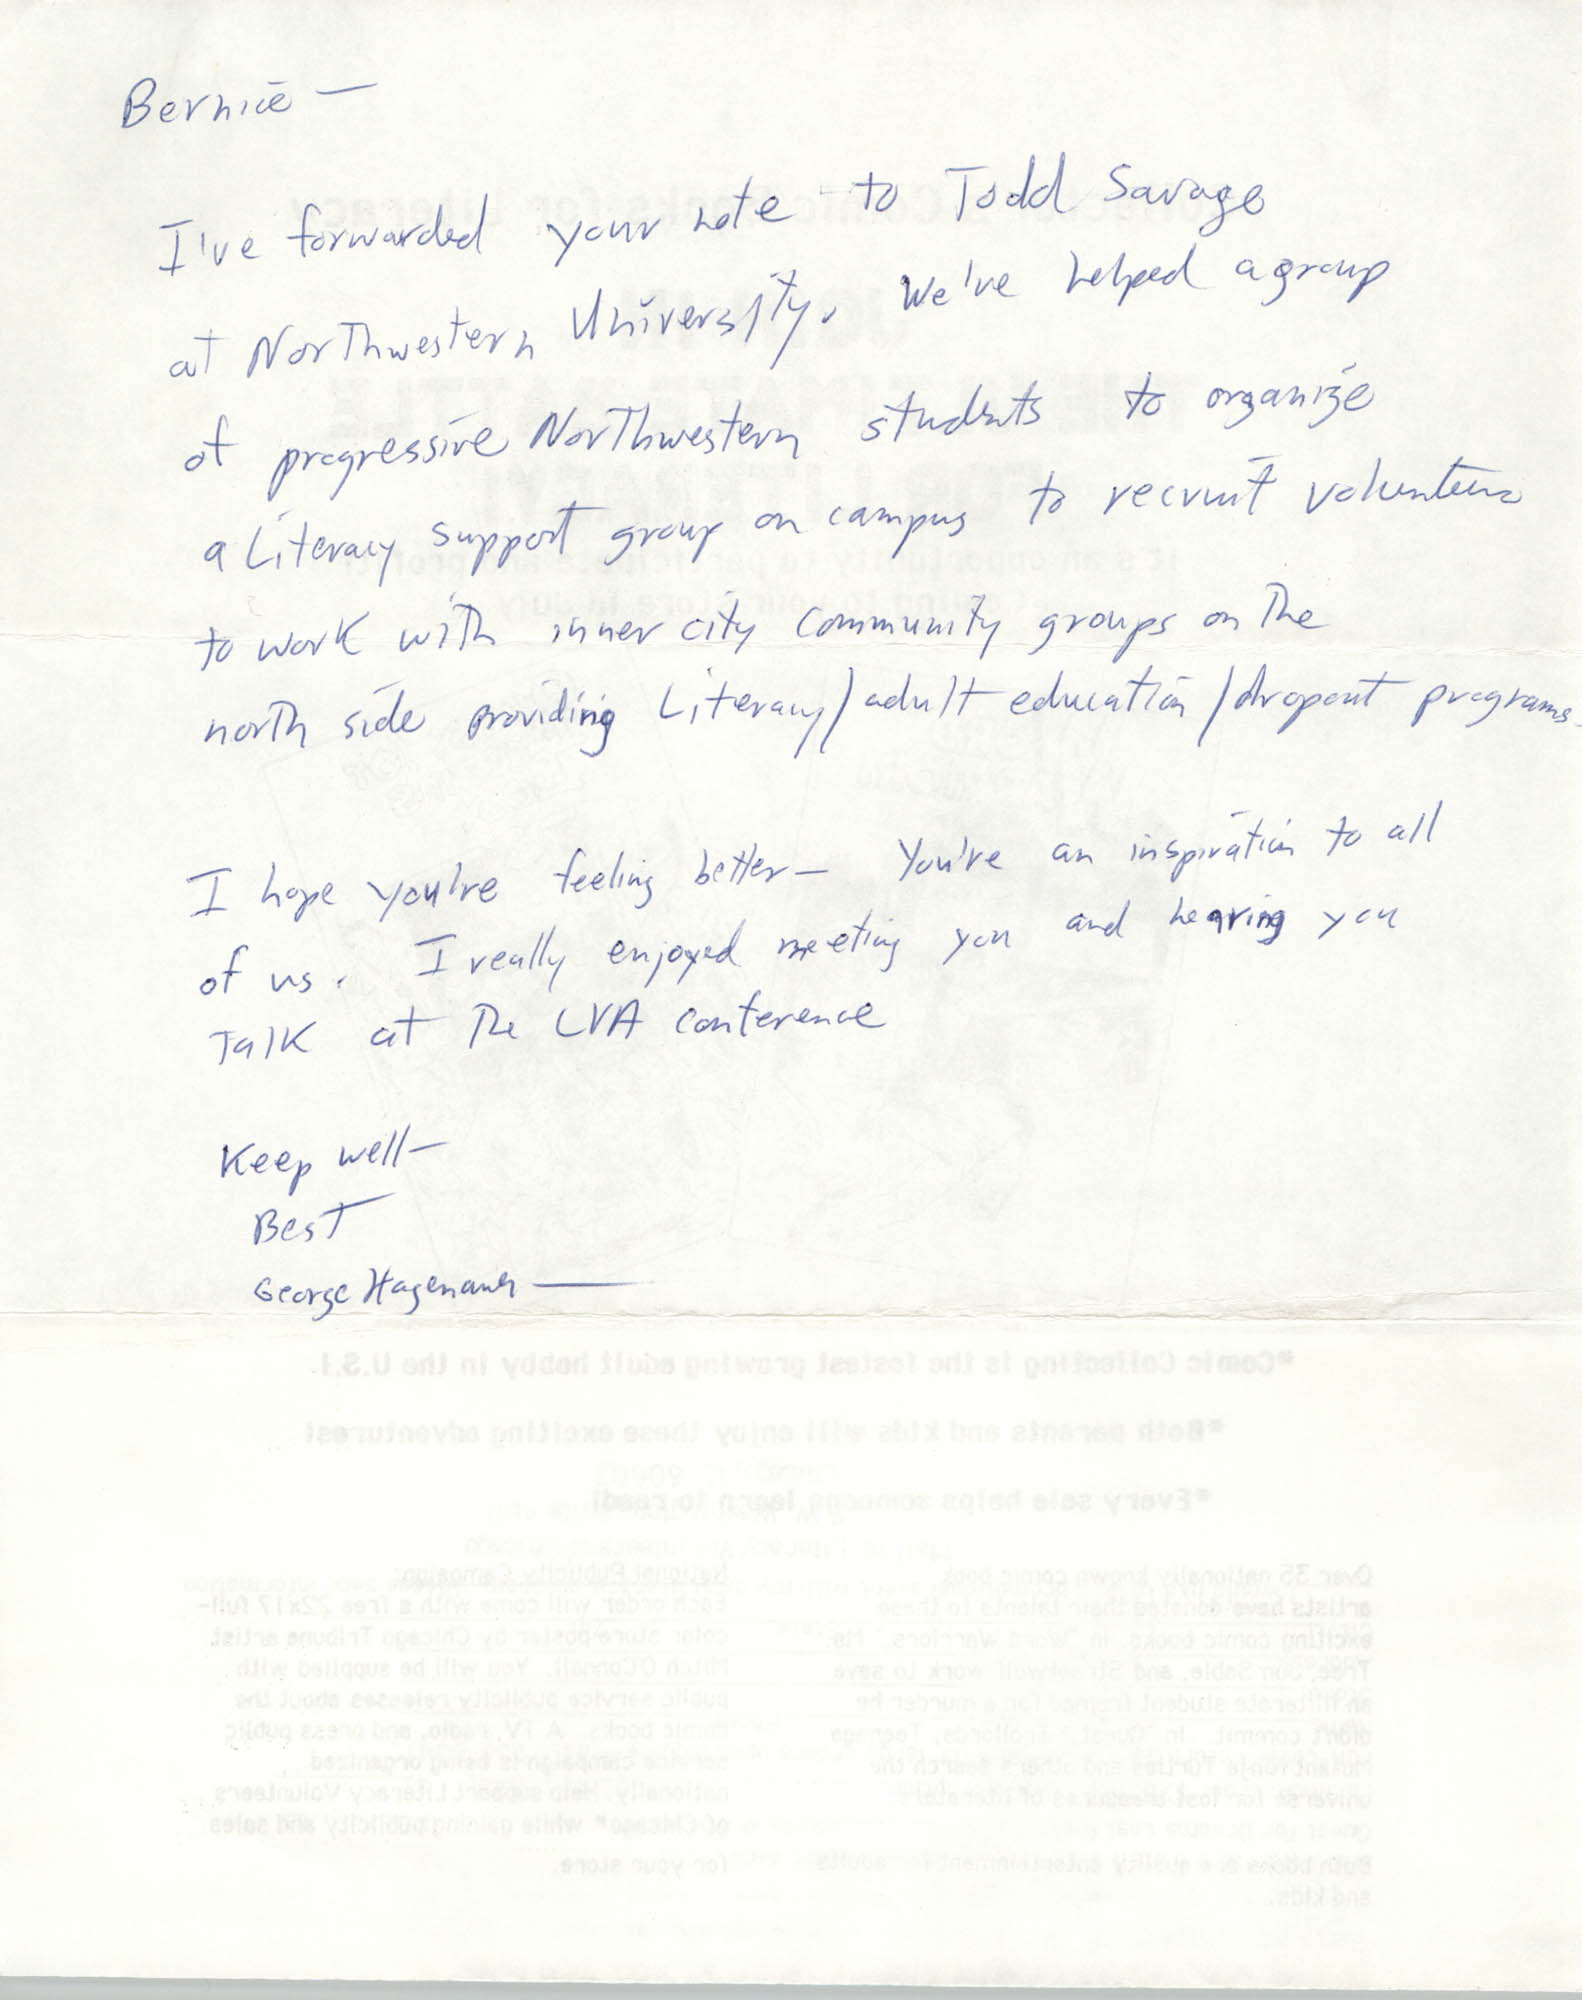 Note from George Hagenauer to Bernice Robinson